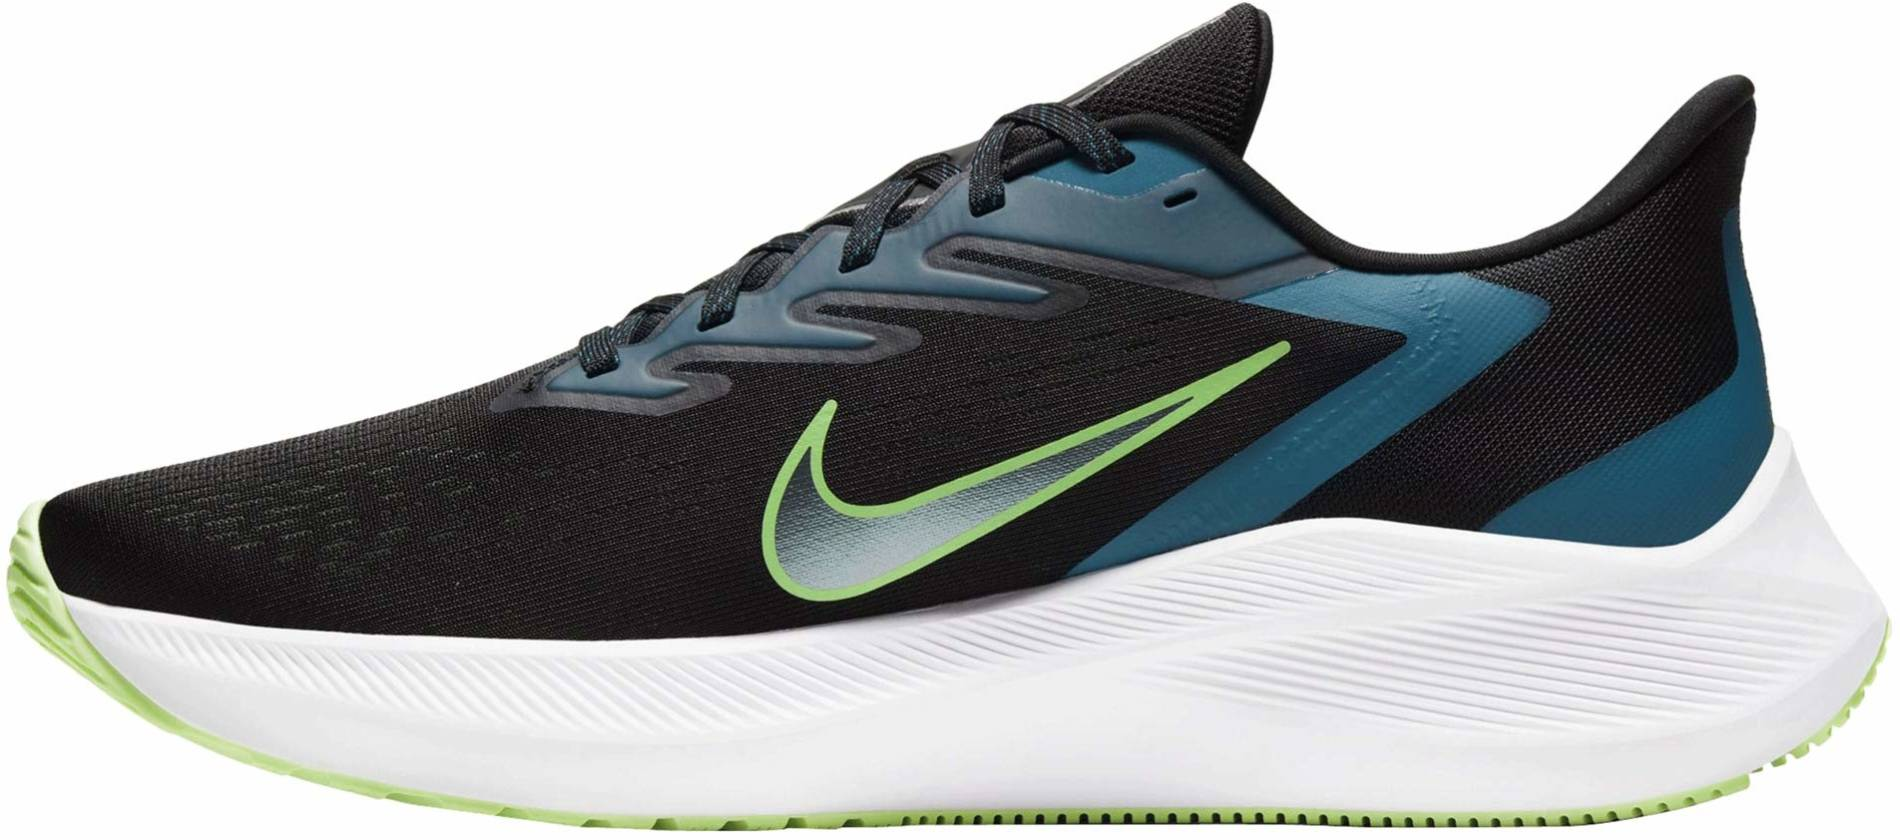 Save 45% on Nike Running Shoes (244